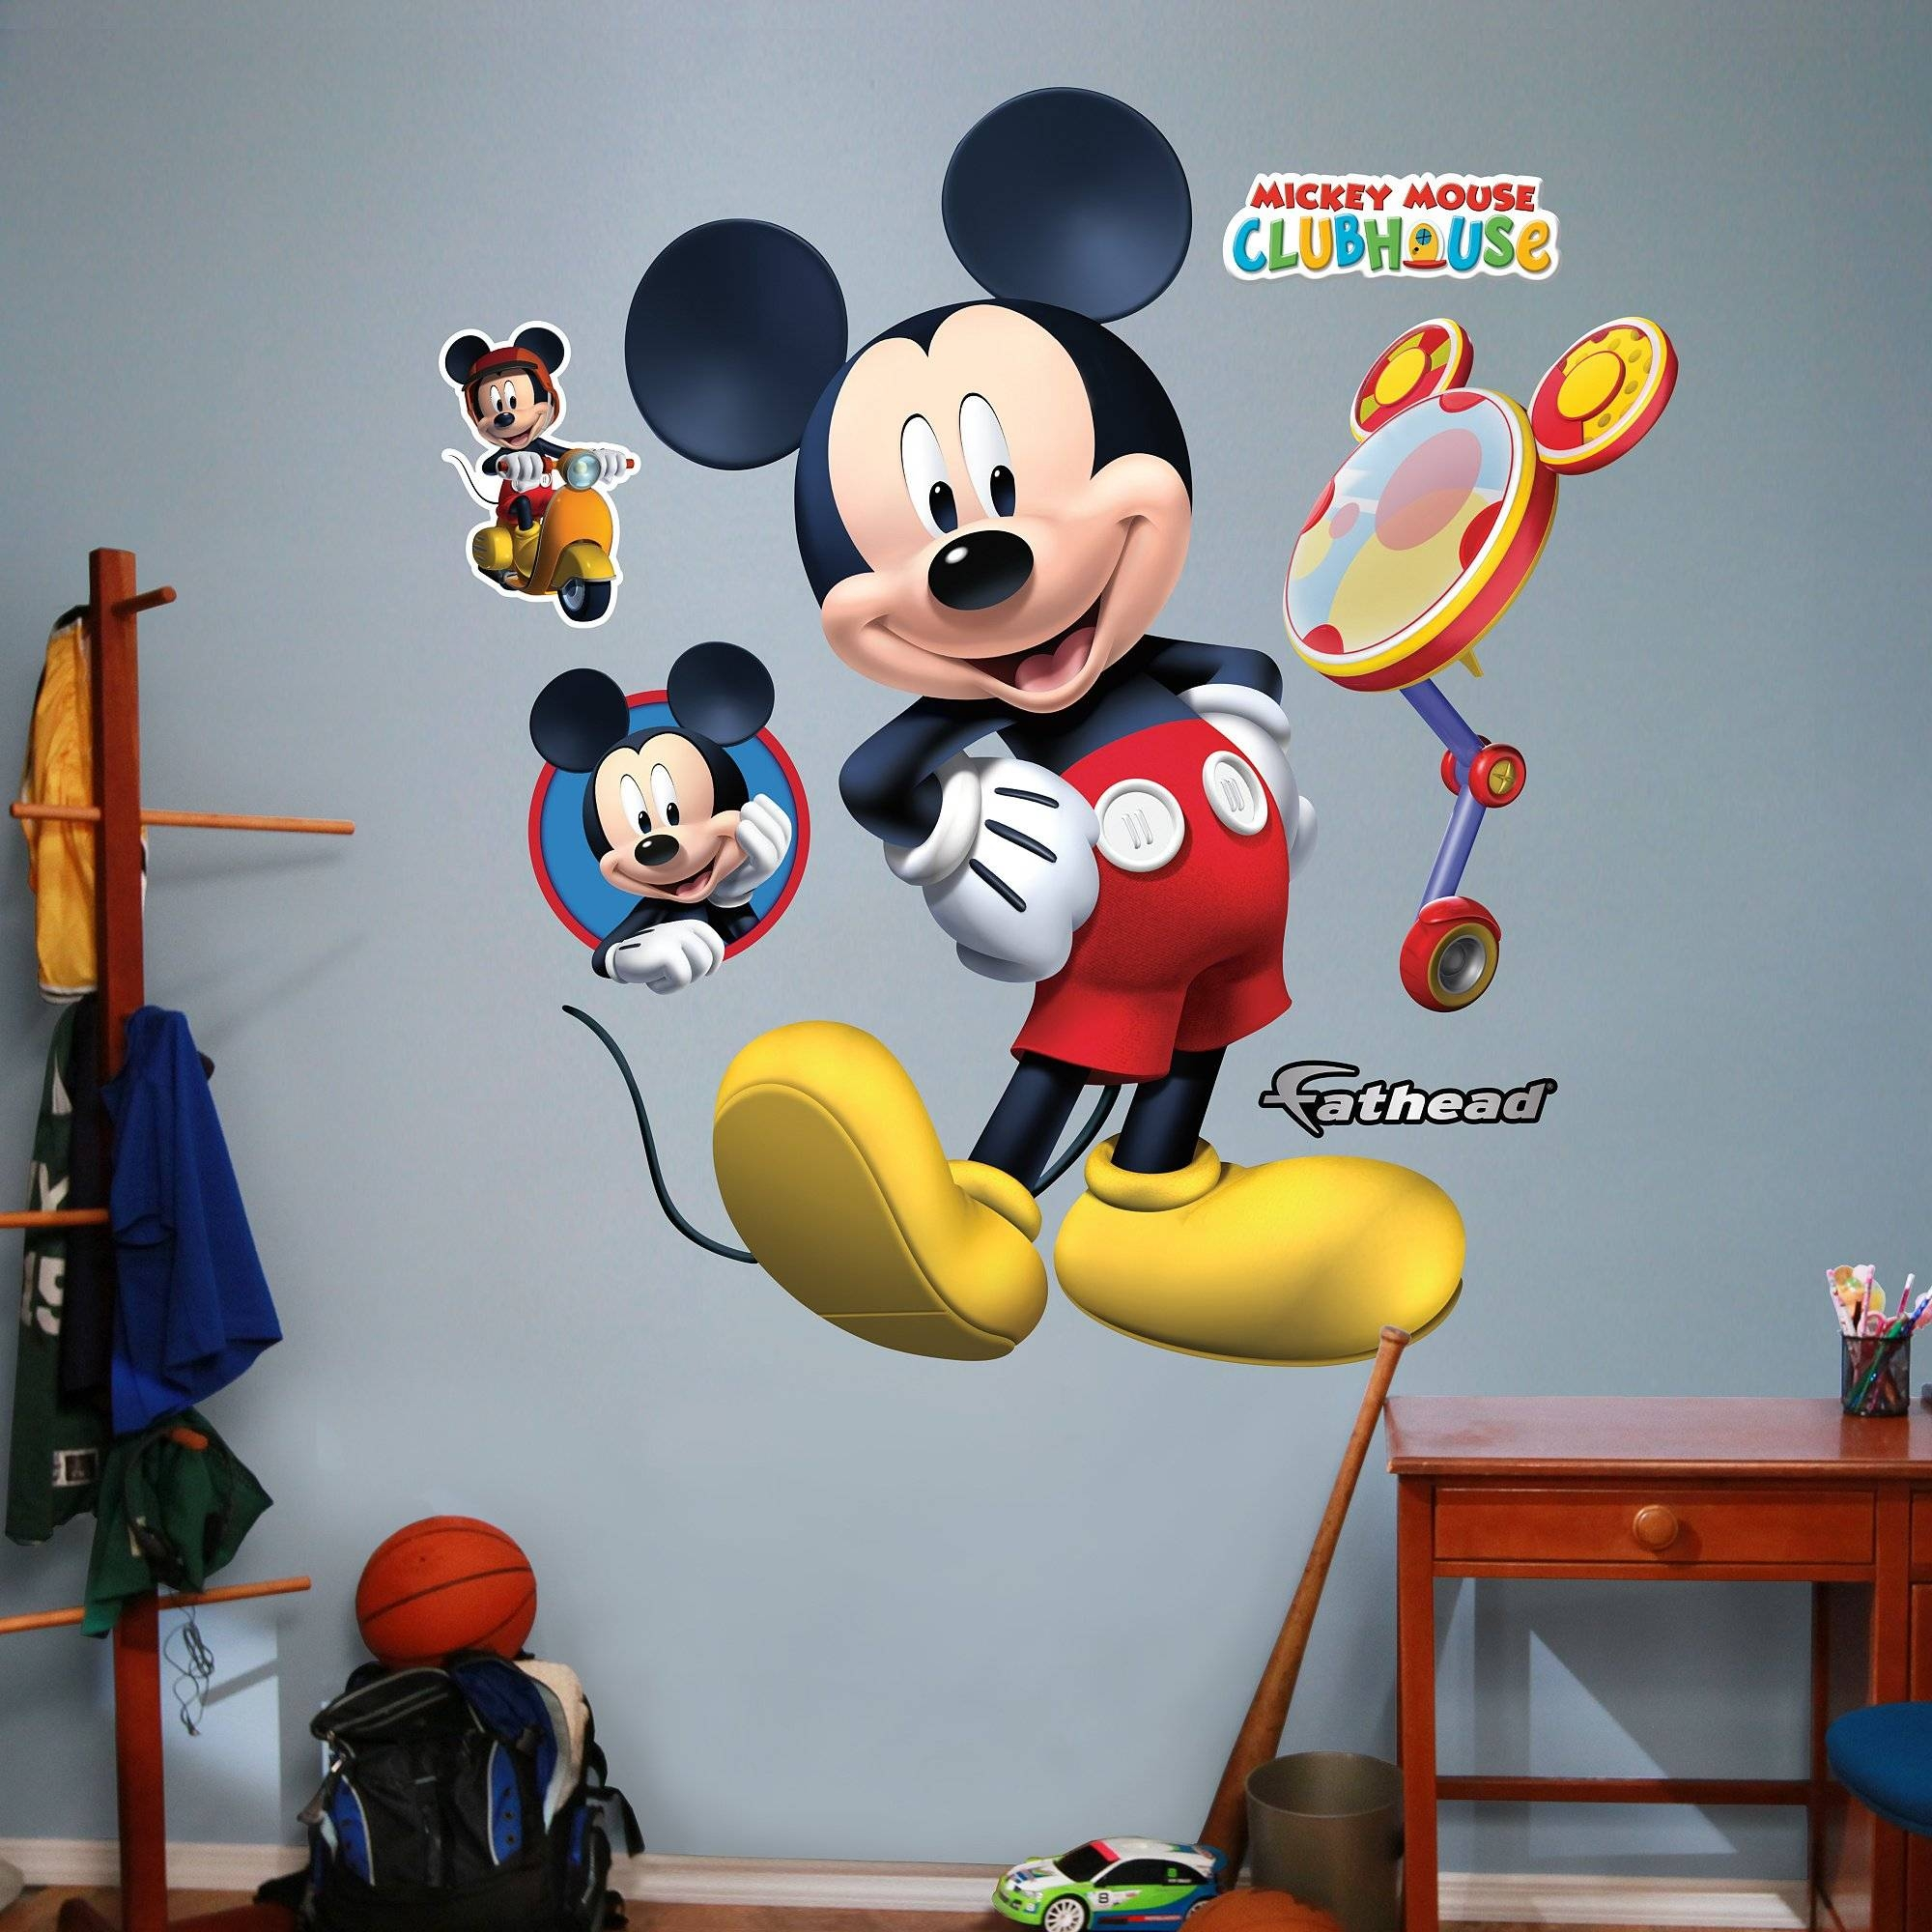 B Art Galleries In Mickey Mouse Clubhouse Wall Decals – Home Decor Regarding Newest Mickey Mouse Clubhouse Wall Art (View 2 of 20)